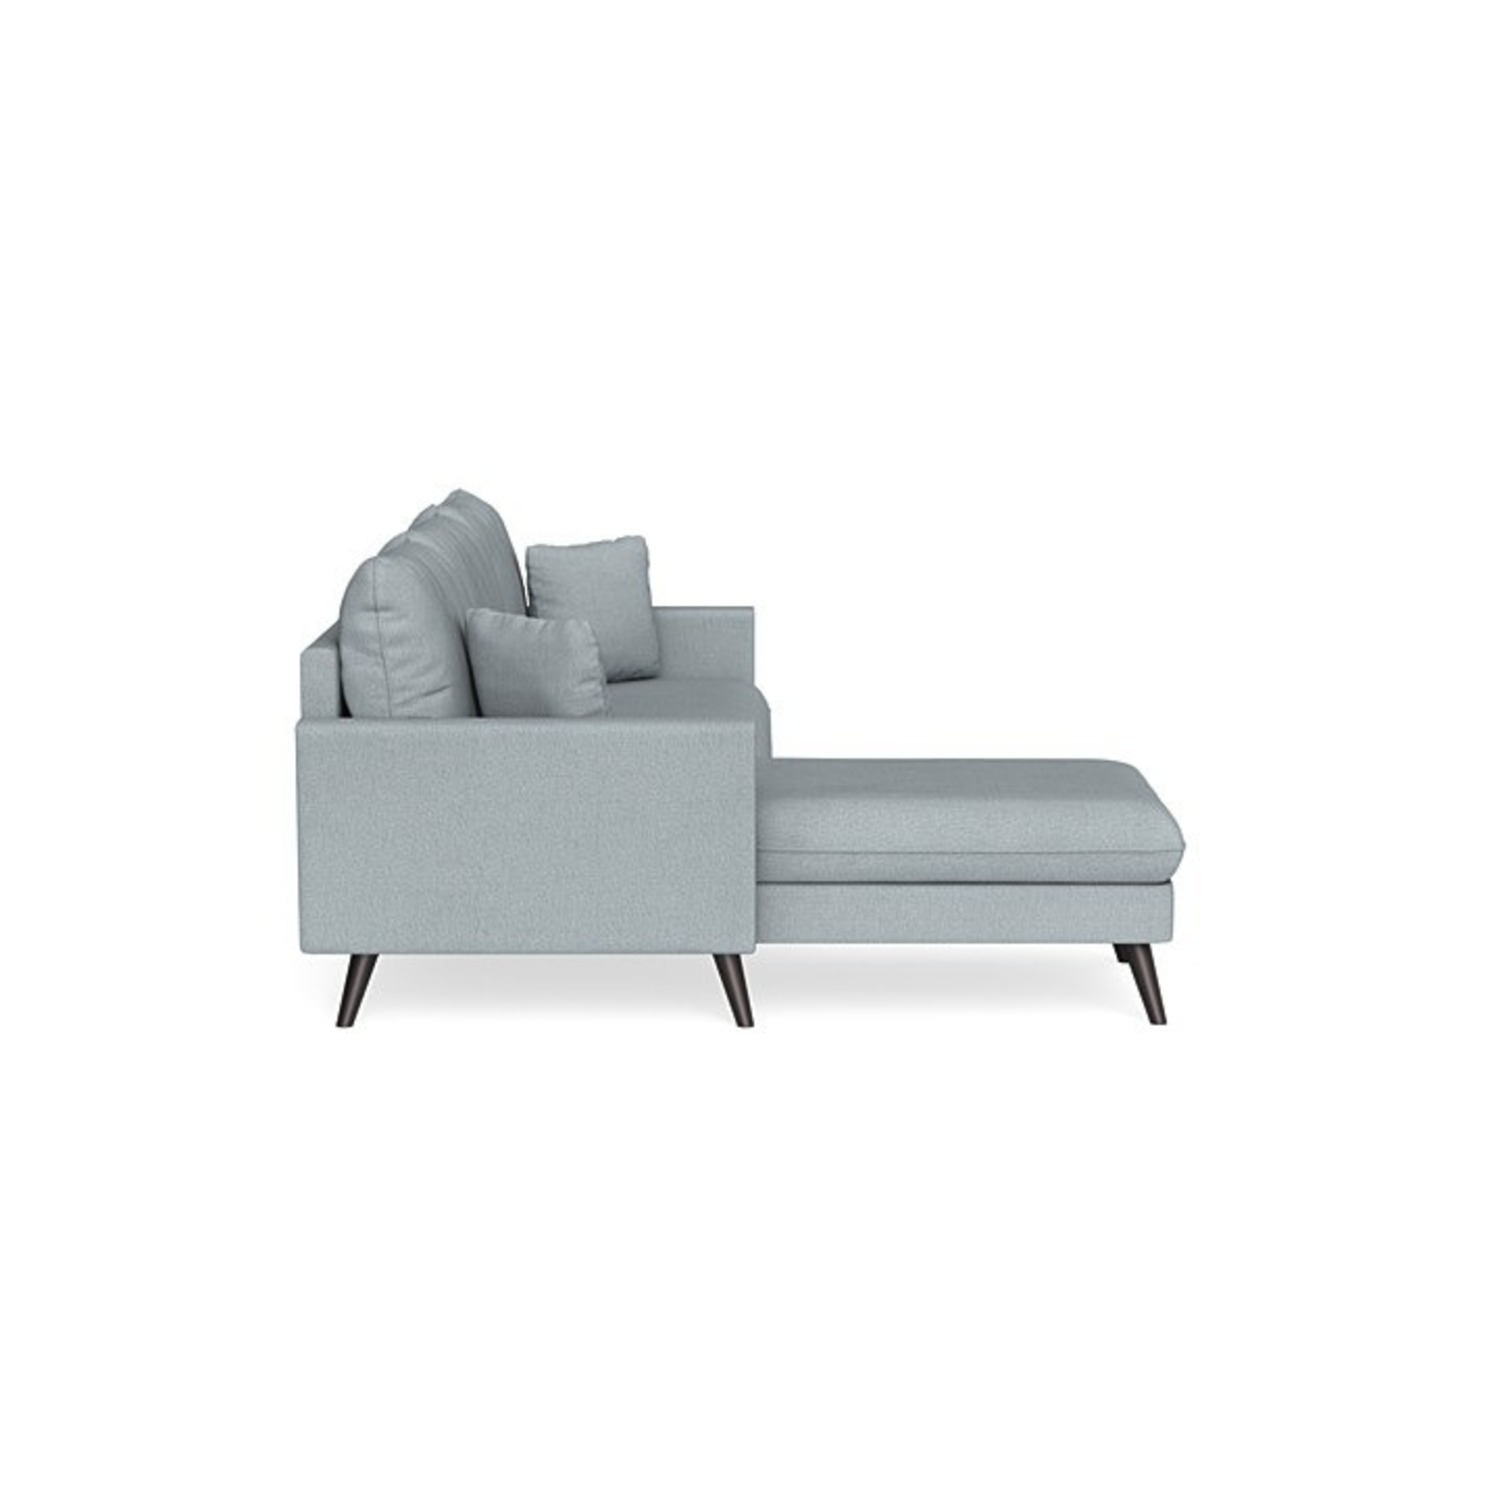 Inside Weather Custom Milo Sectional in Ash - image-2